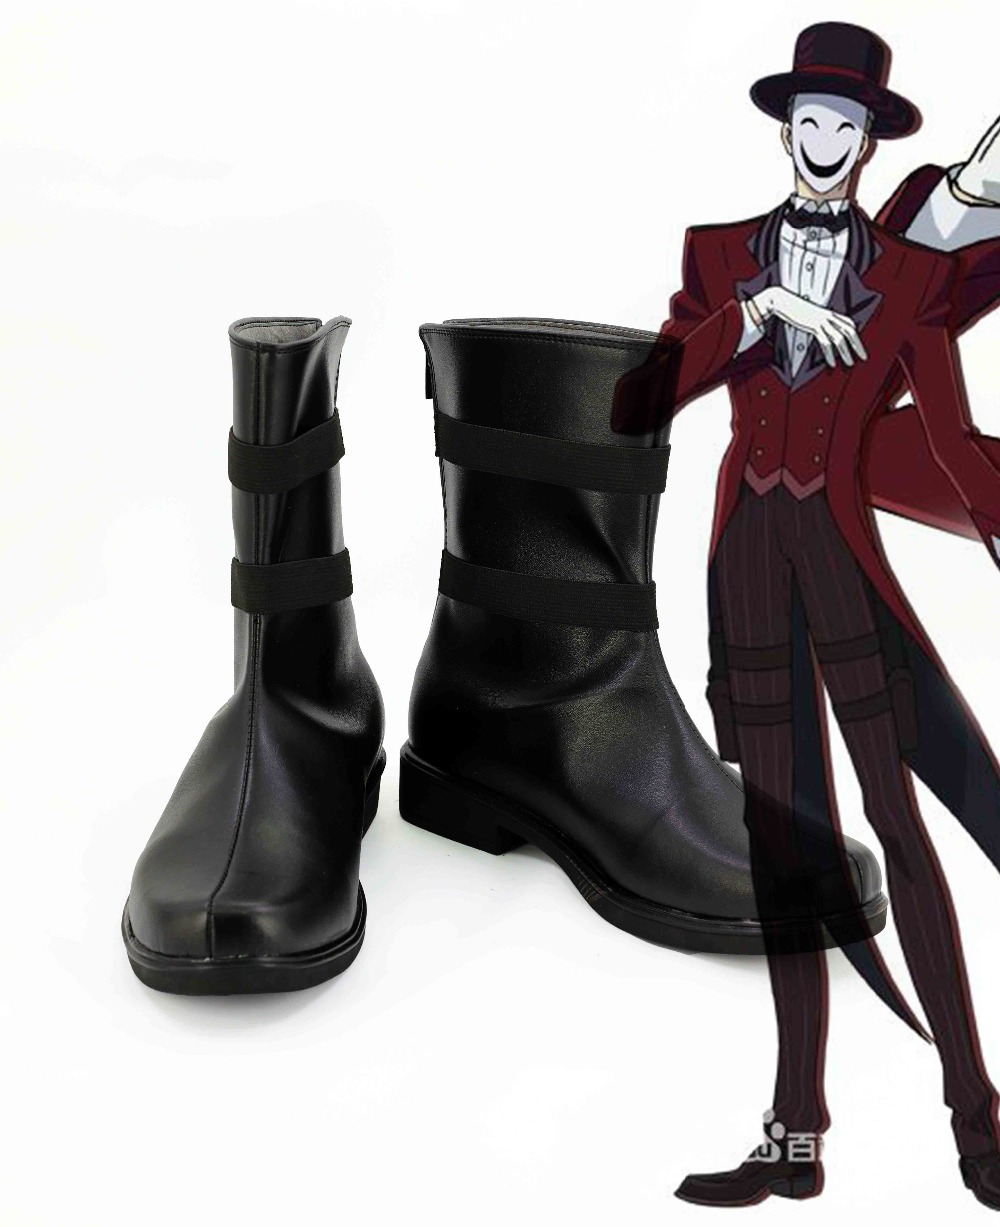 black bullet punk joker hero lolita Halloween cosplay costume sports shoes boots custom single shoes-in Shoes from Novelty u0026 Special Use on Aliexpress.com ...  sc 1 st  AliExpress.com & black bullet punk joker hero lolita Halloween cosplay costume sports ...